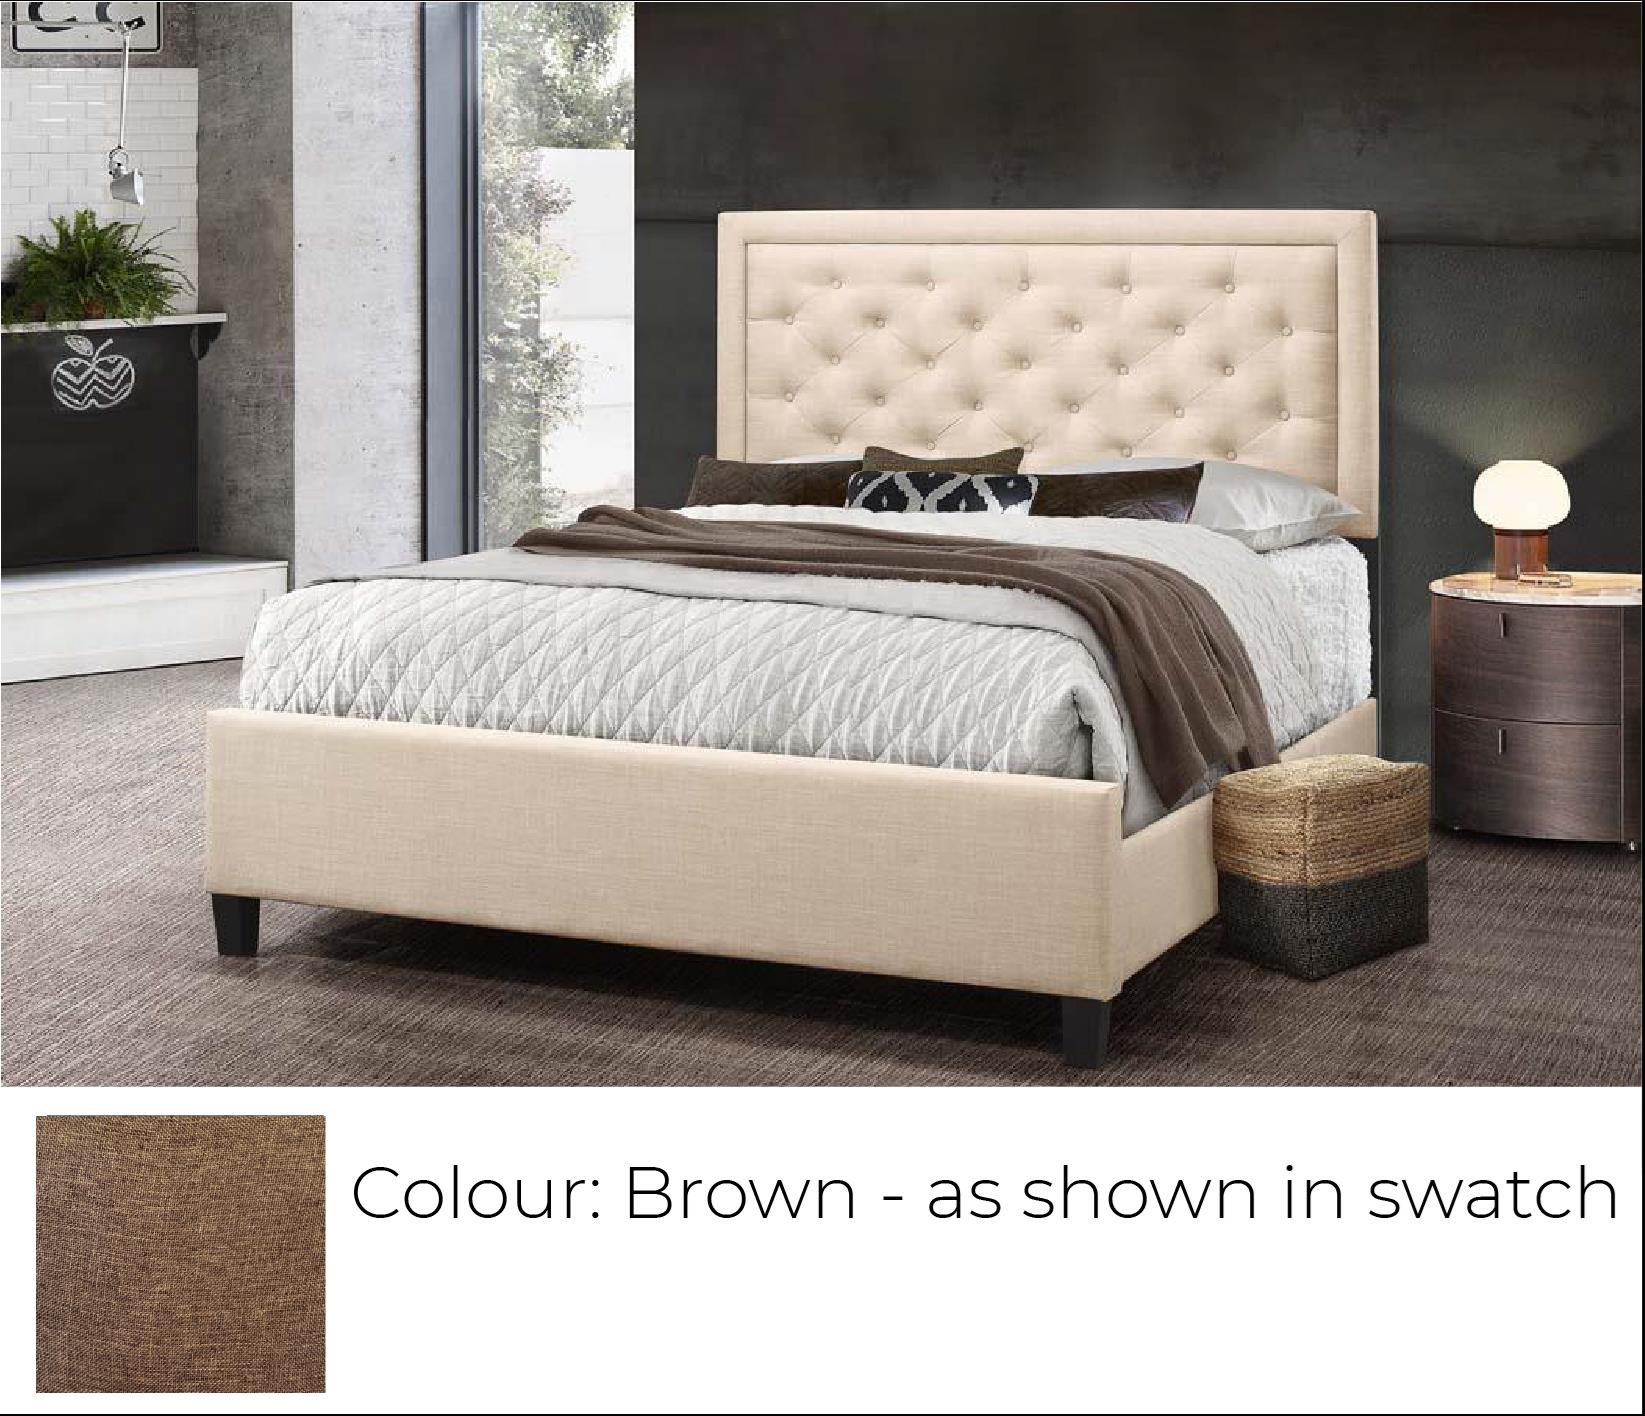 B622 Ready To Assemble Queen Upholstered Bed Brown Bennett S Furniture And Mattresses Upholstered Beds